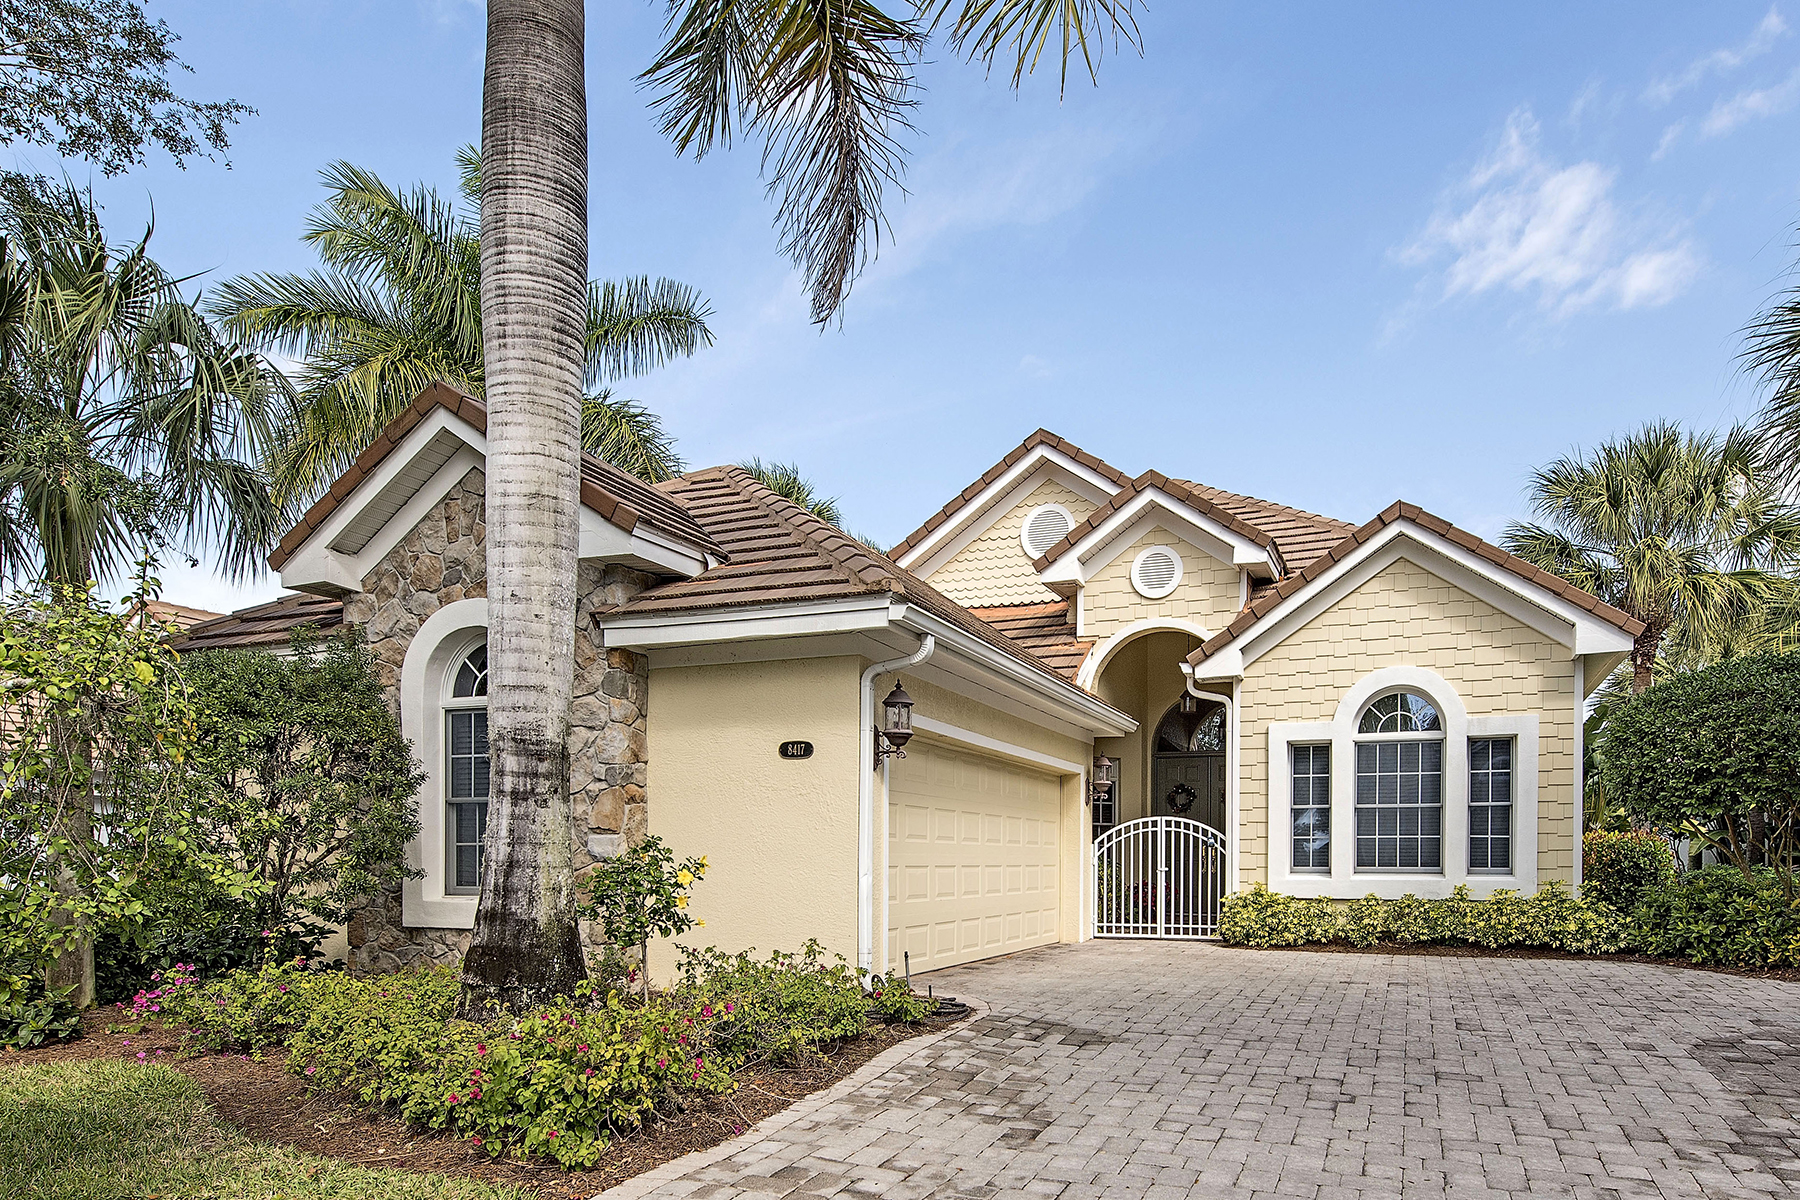 Maison unifamiliale pour l Vente à FIDDLER'S CREEK - MALLARDS LANDING 8417 Mallards Way Naples, Florida, 34114 États-Unis